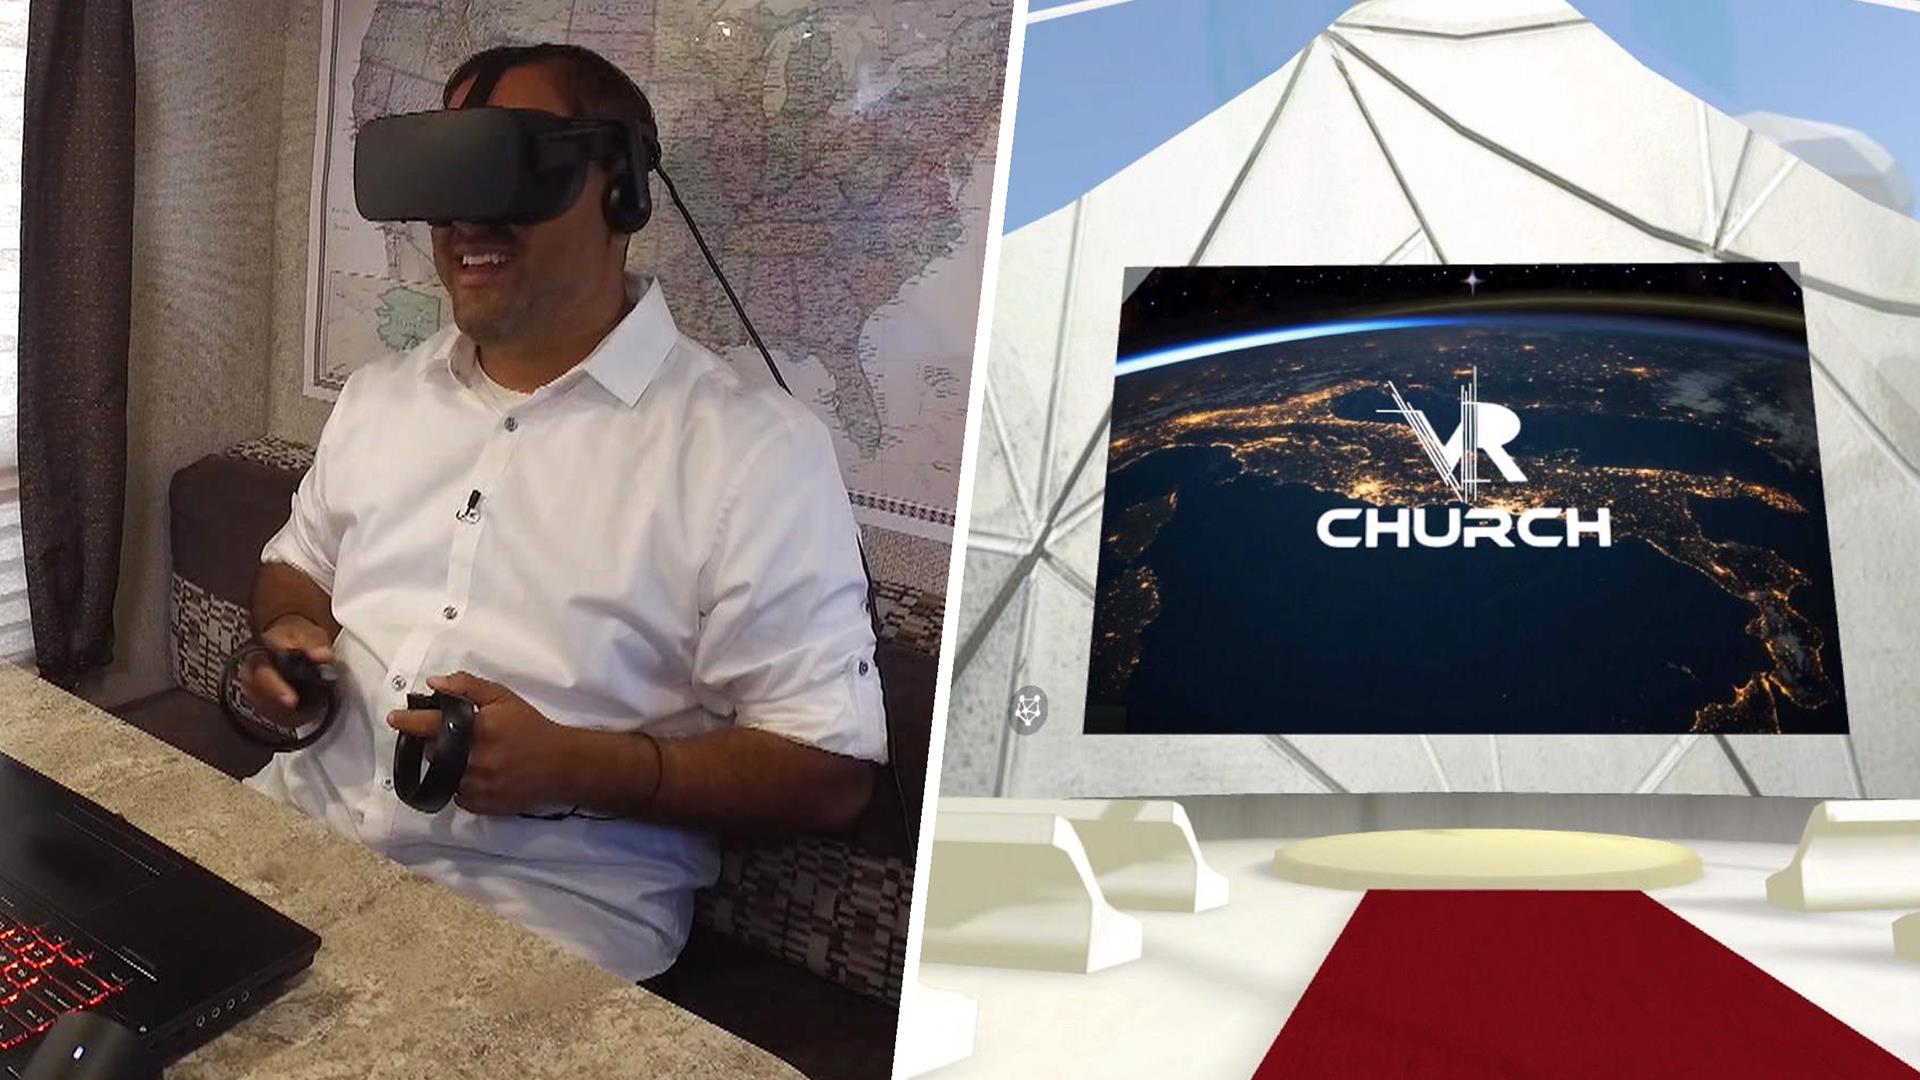 Take a look inside one pastor's virtual reality church